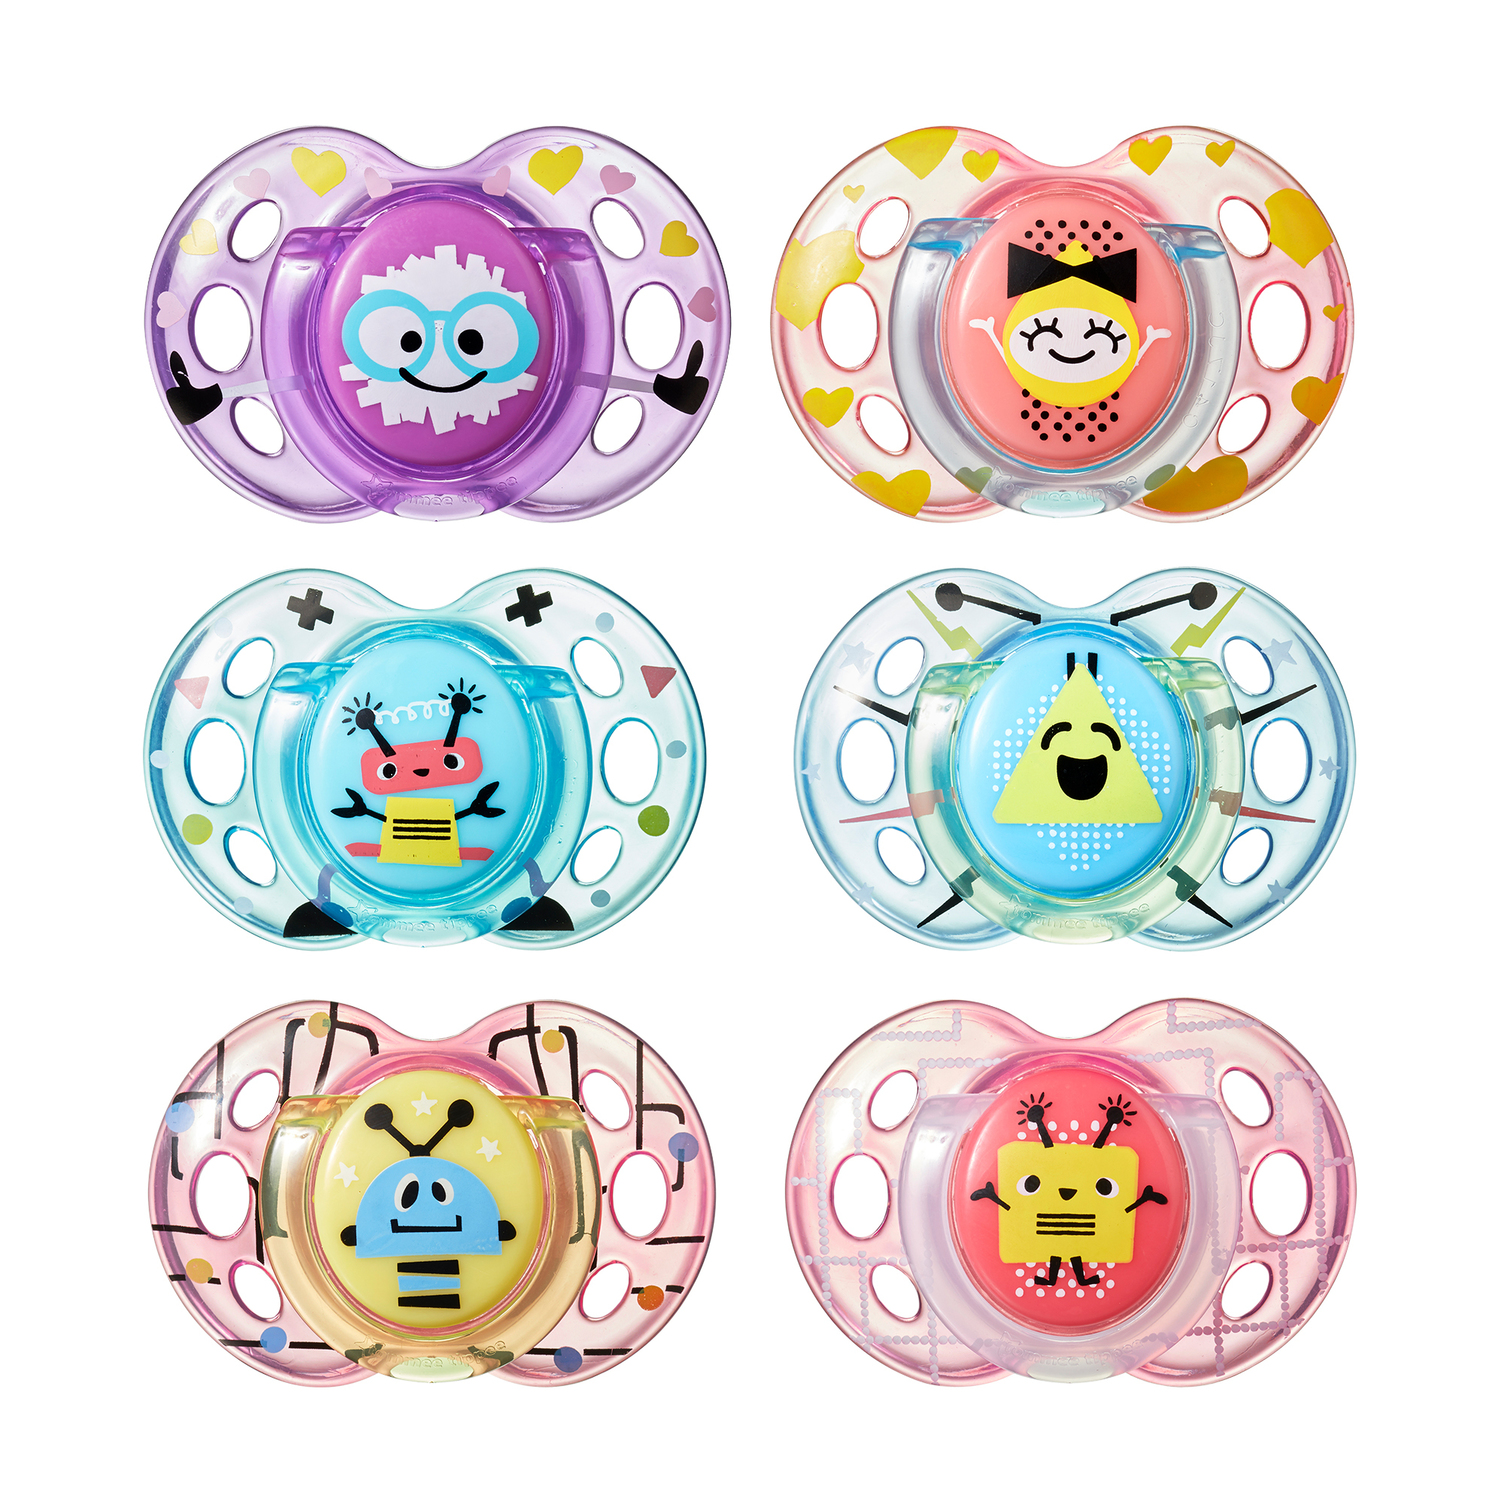 Tommee Tippee Closer to Nature Fun Style Baby Pacifiers, 6-18 months - 2 count (Colors May Vary)